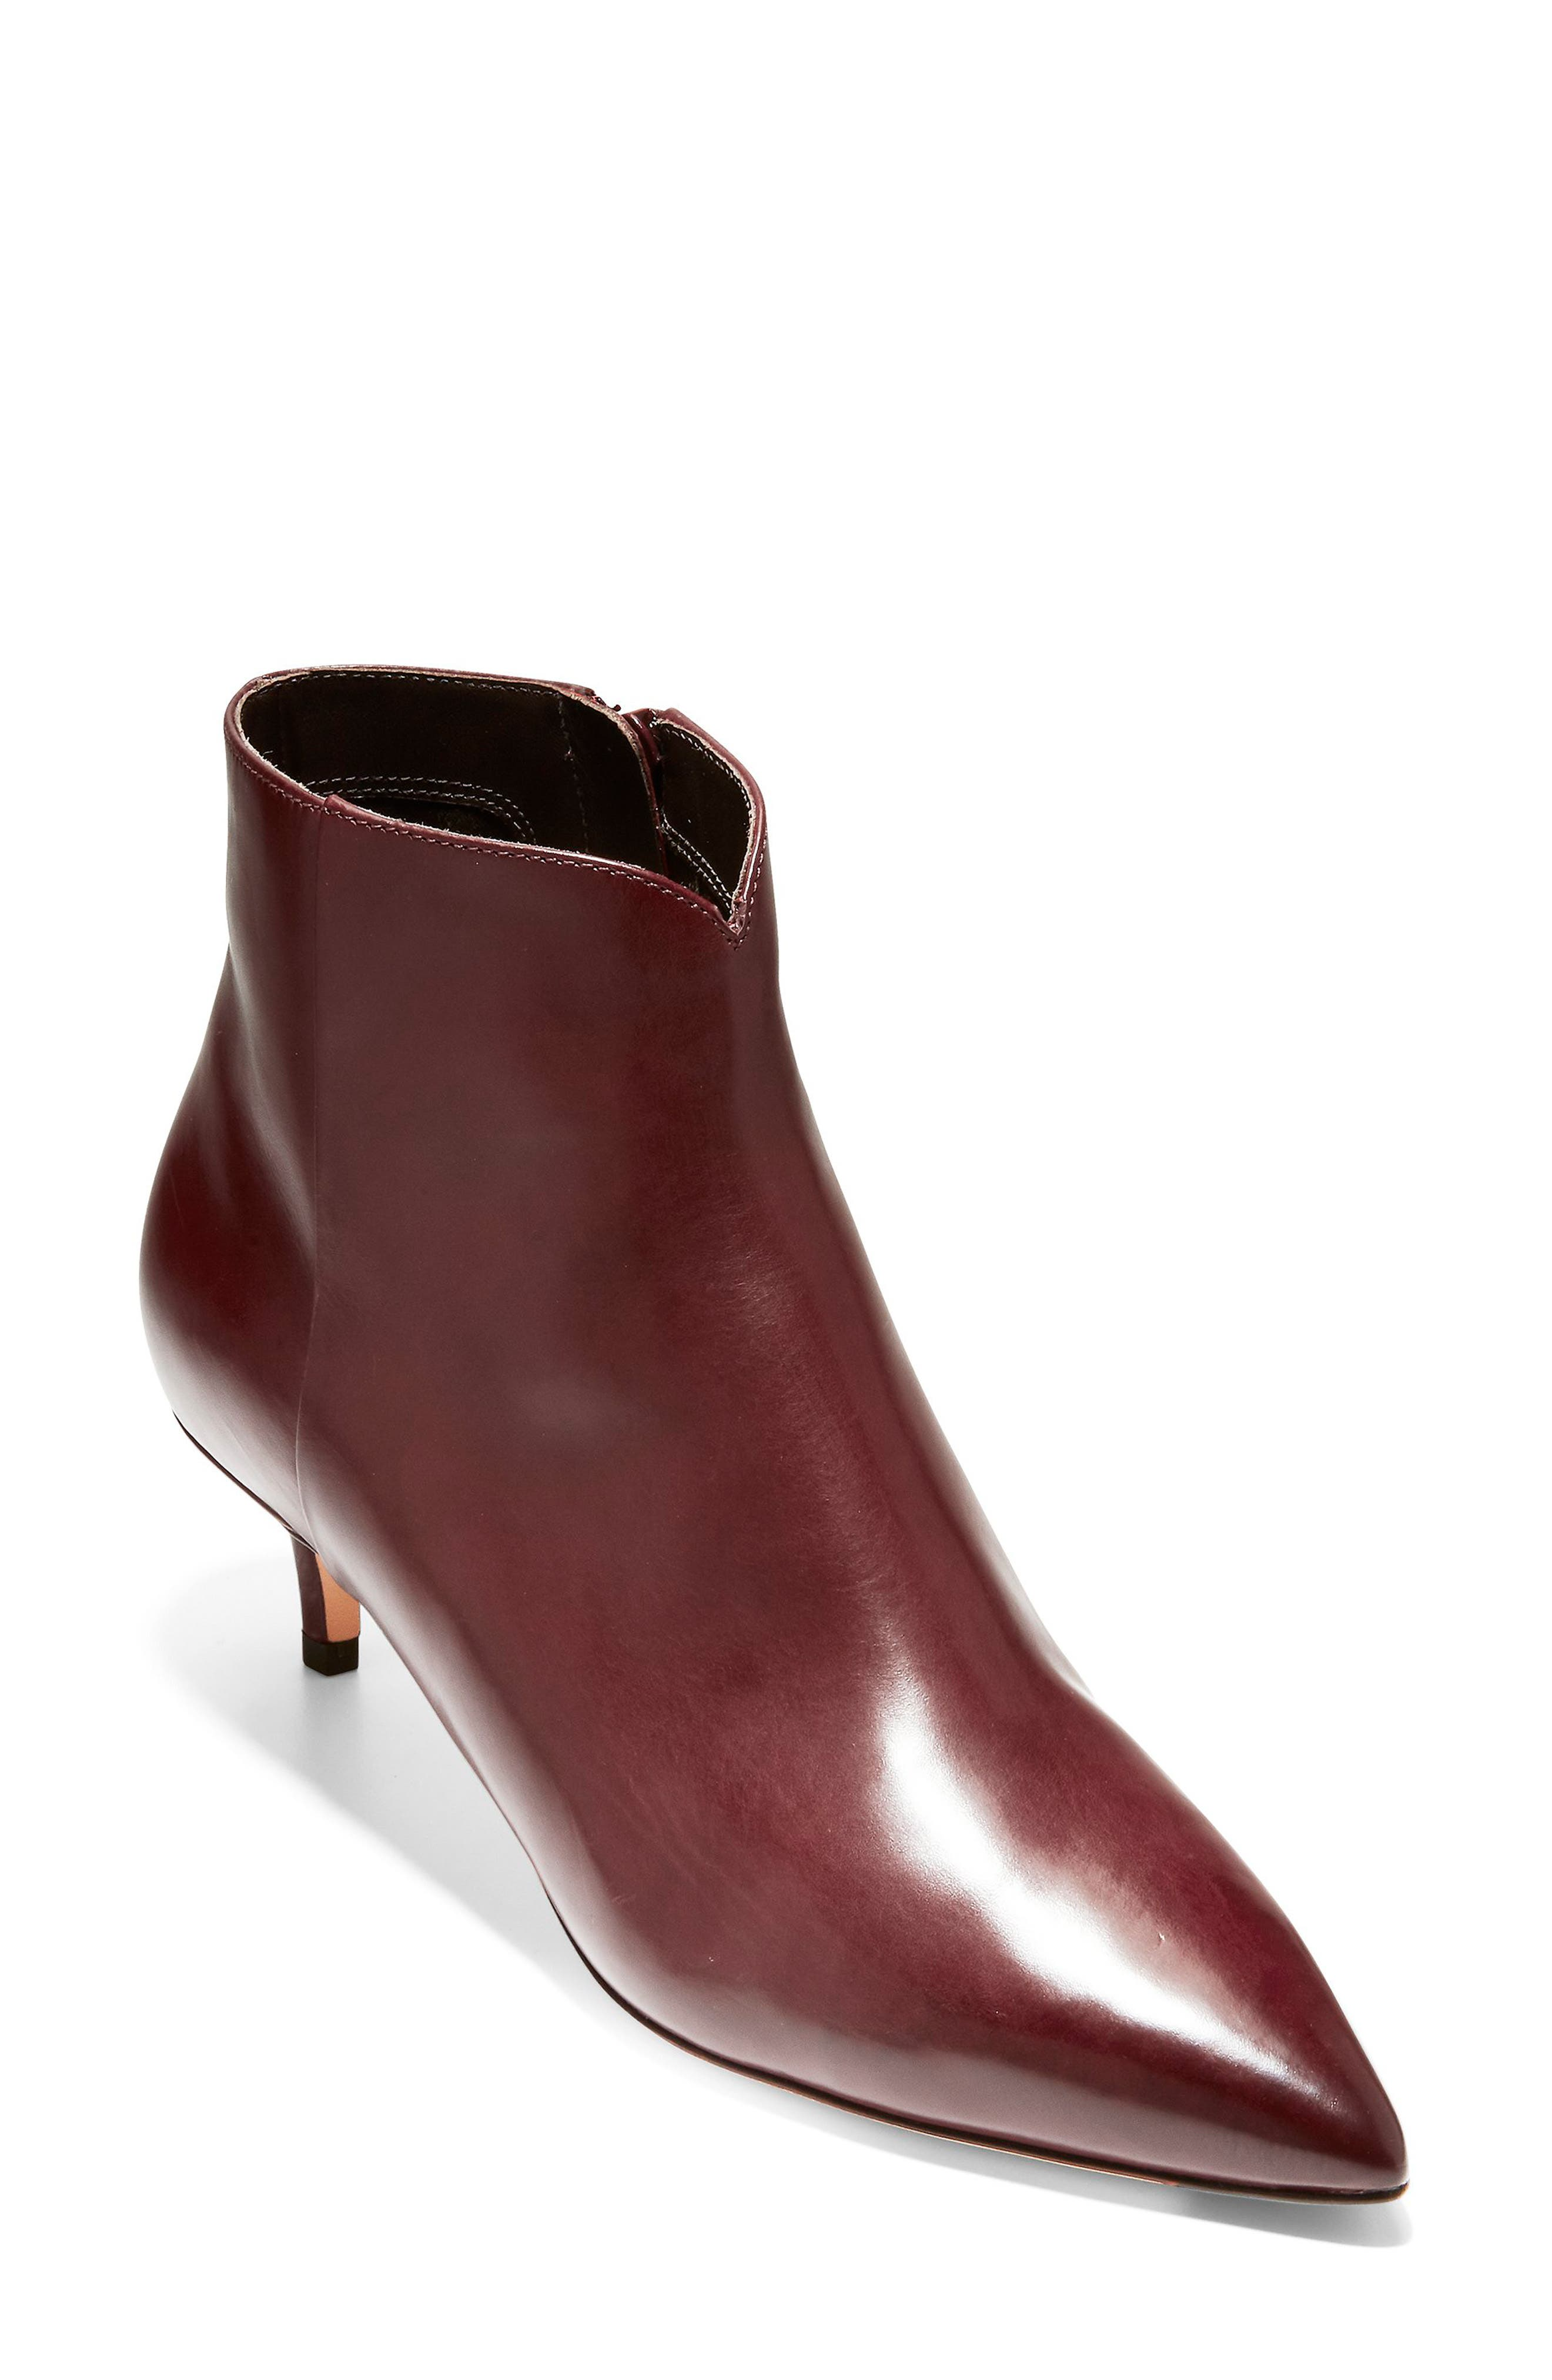 Vesta Bootie,                         Main,                         color, CORDOVAN LEATHER